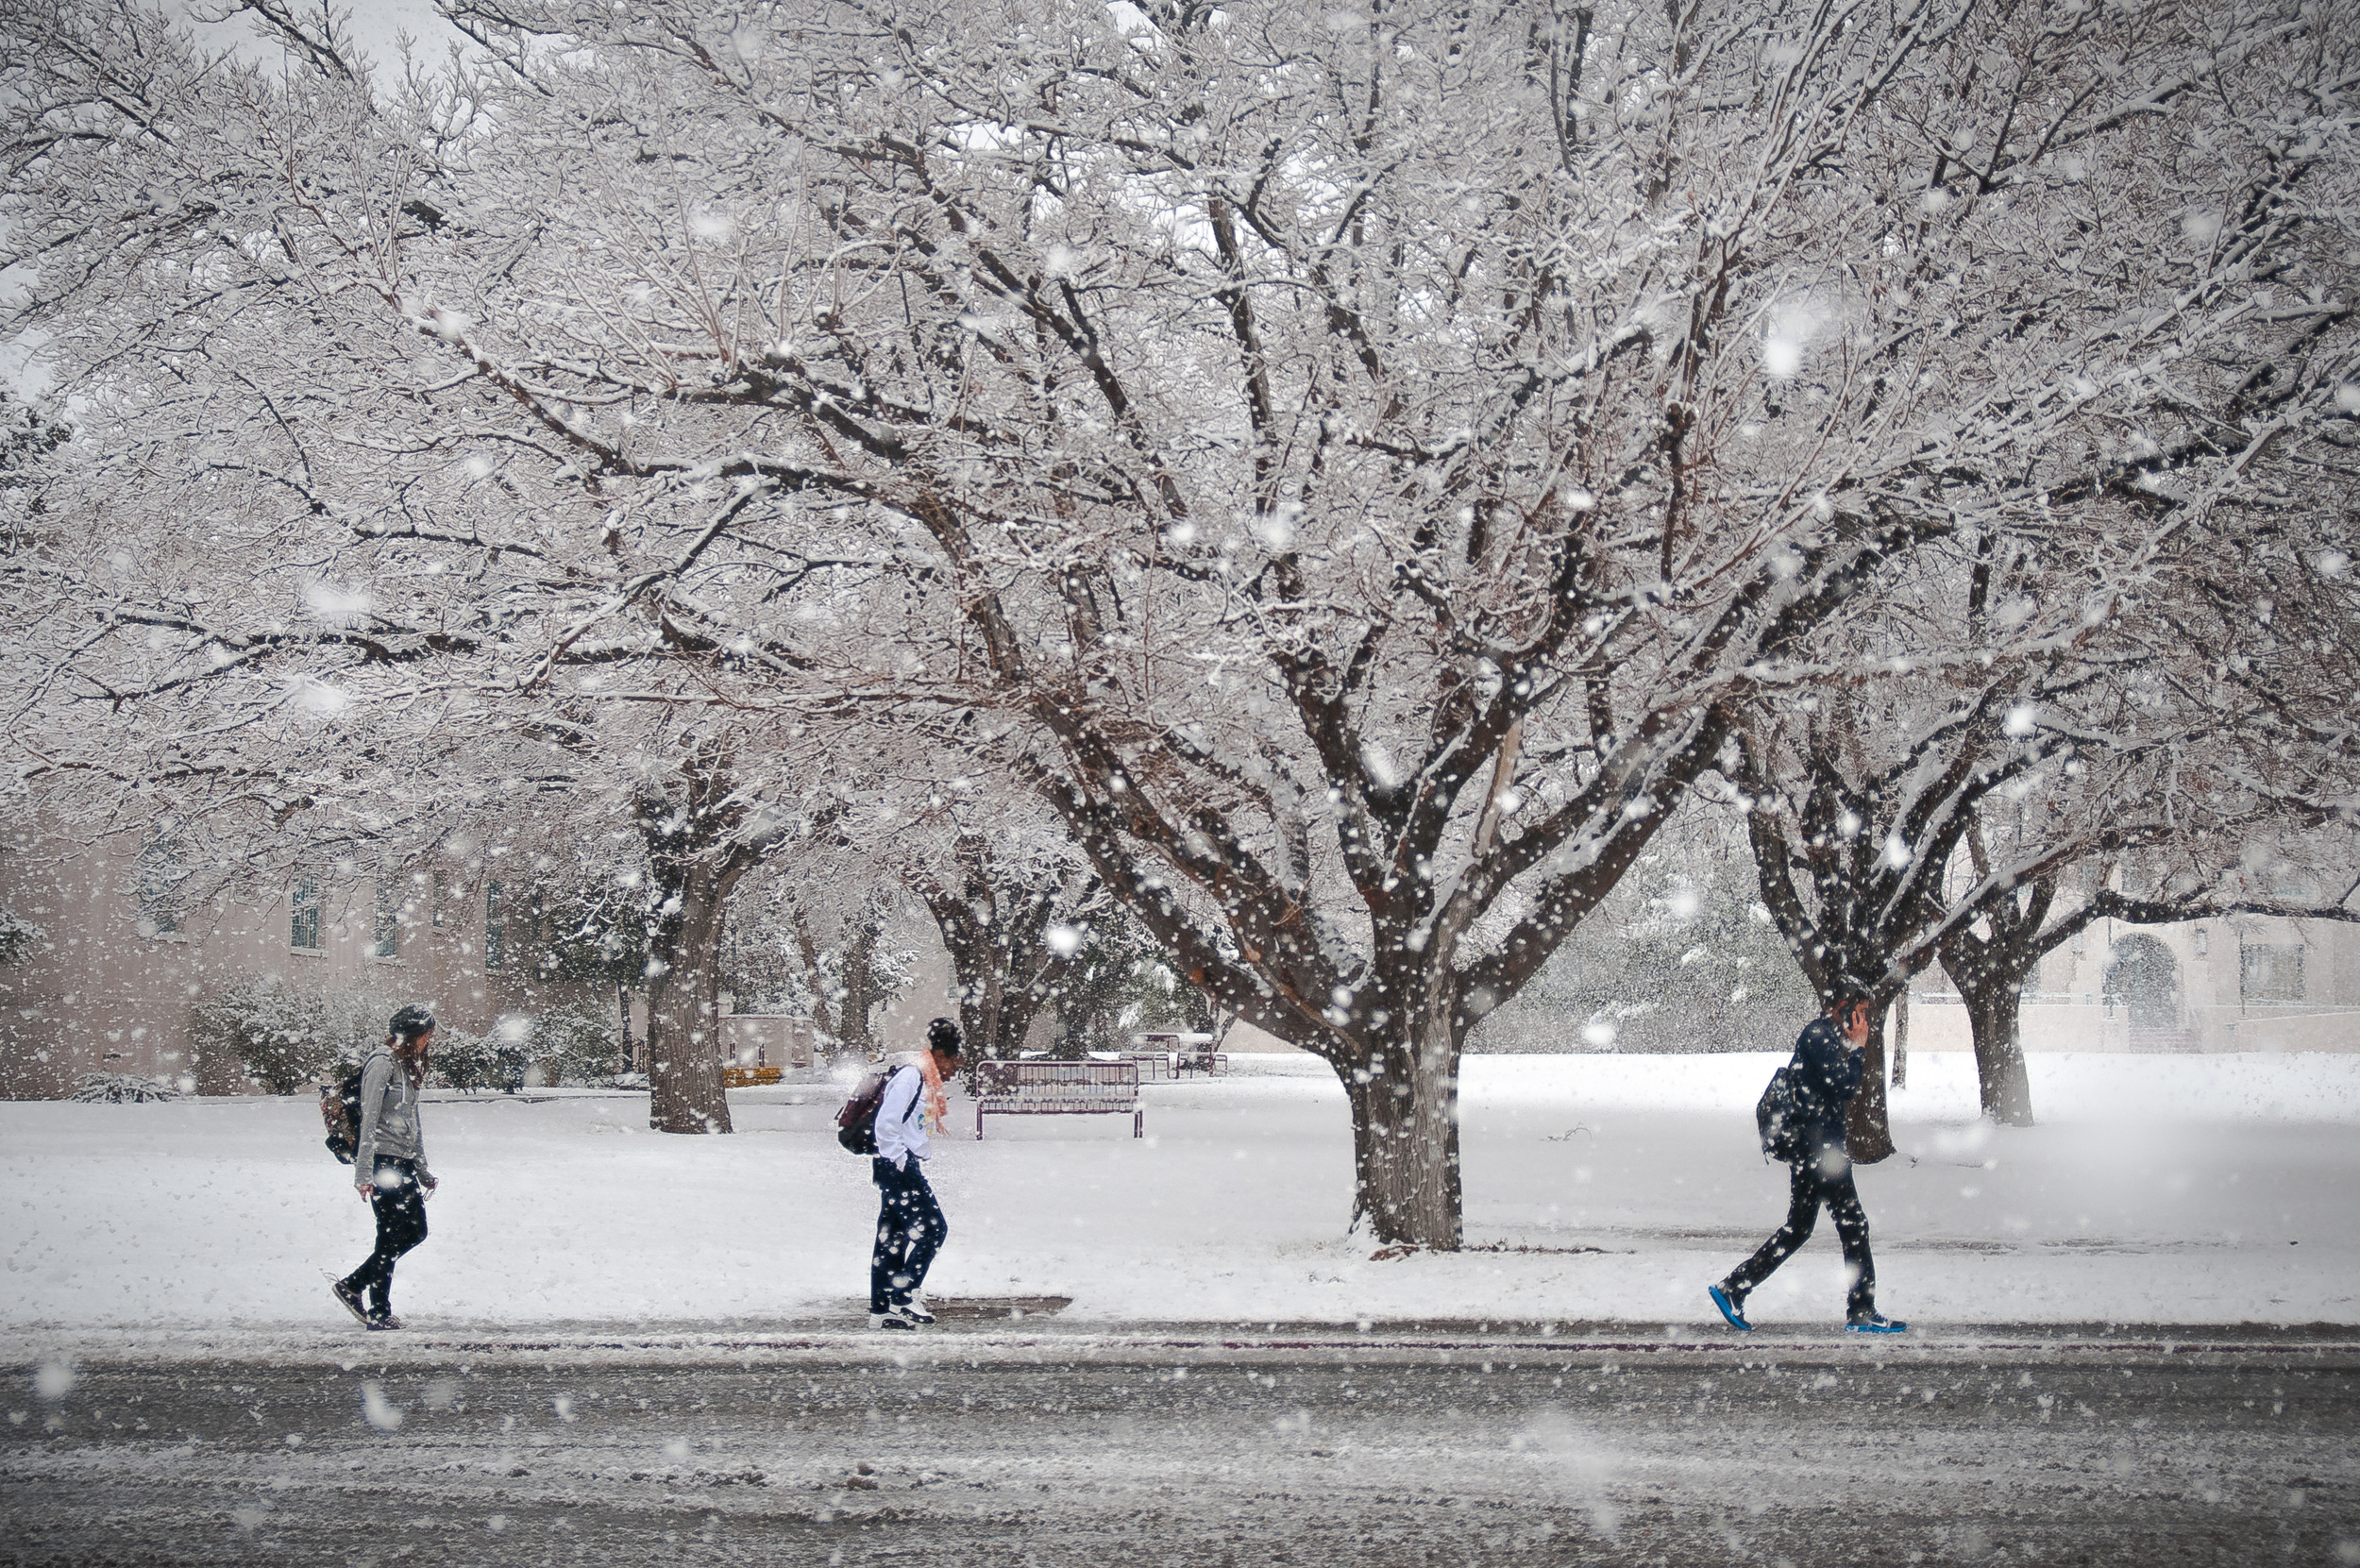 Students struggle through the snow on the New Mexico State University Campus in Las Cruces during a massive storm.